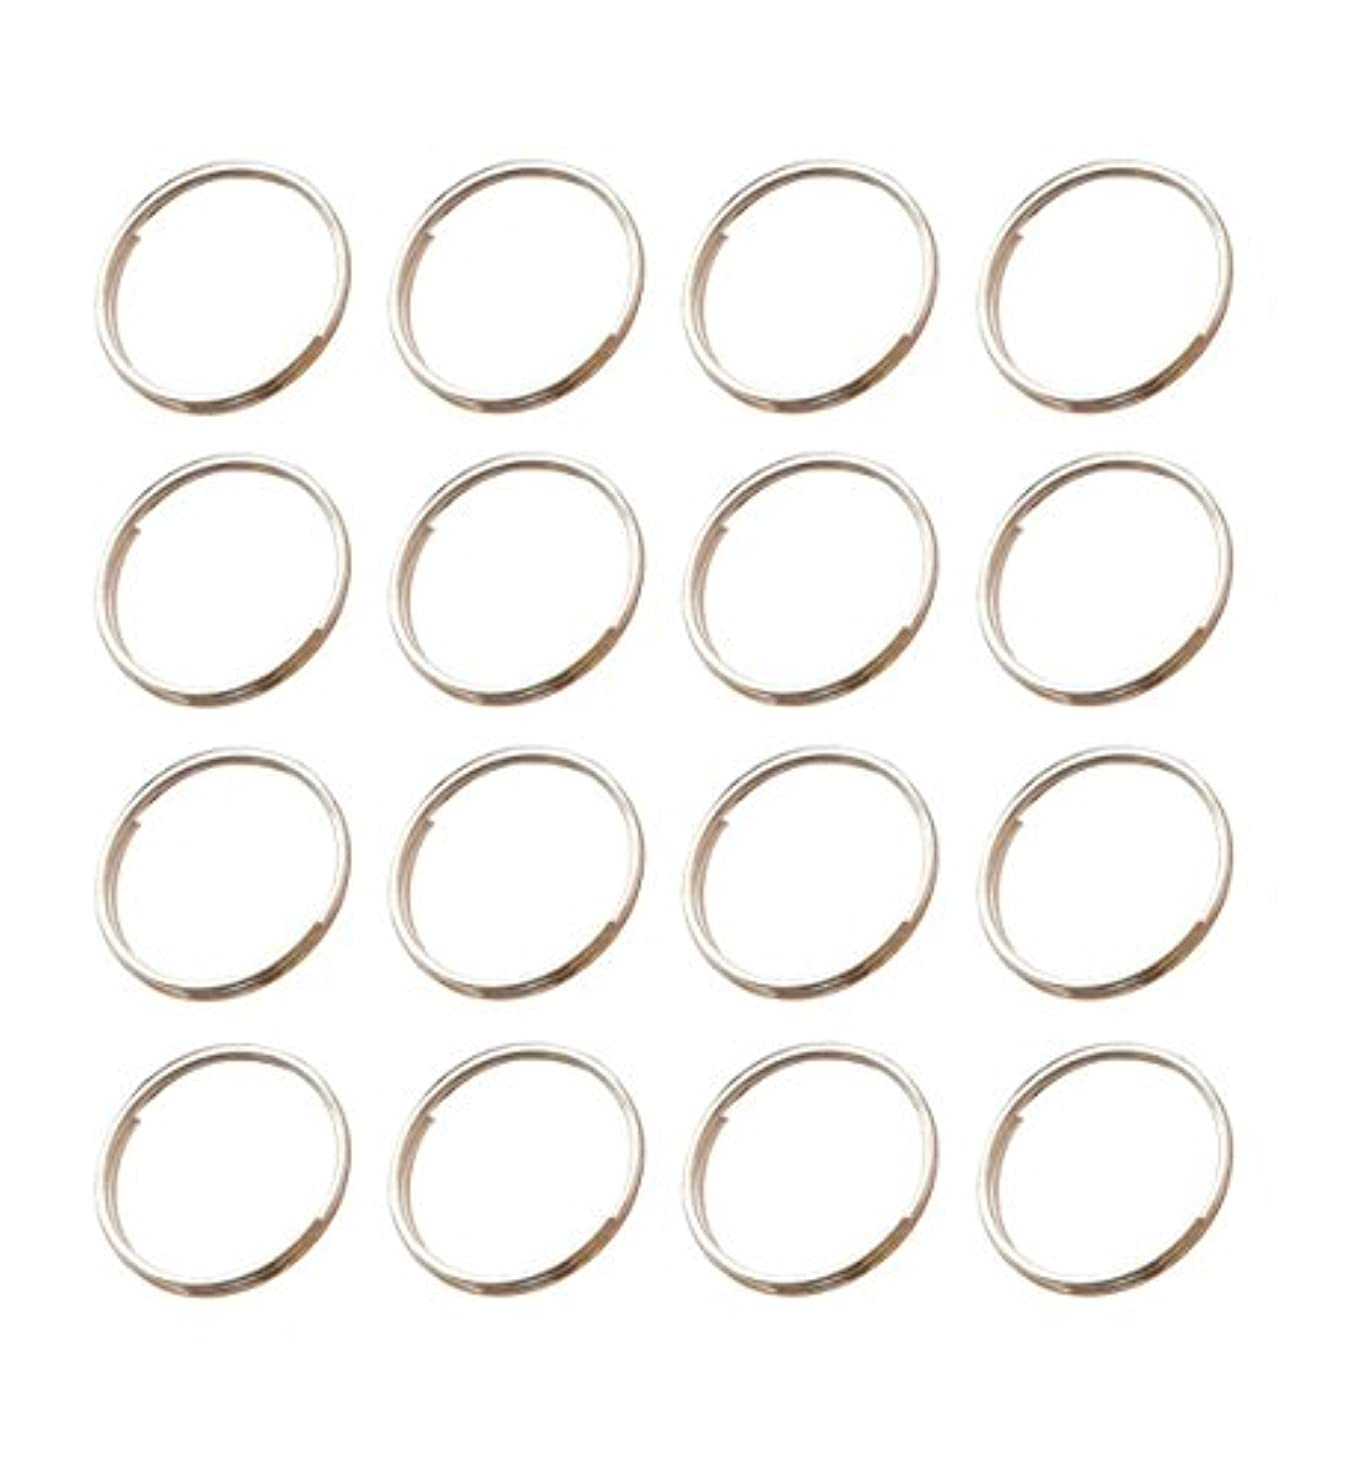 200Pcs Stainless Split Rings for Chandelier Crystals, Suncatchers, Crystal Garlands, Crystal Bead Curtains, Crystal Strands, Necklaces, Keys, Earrings, Jewelry Making and Craft Project (12mm)